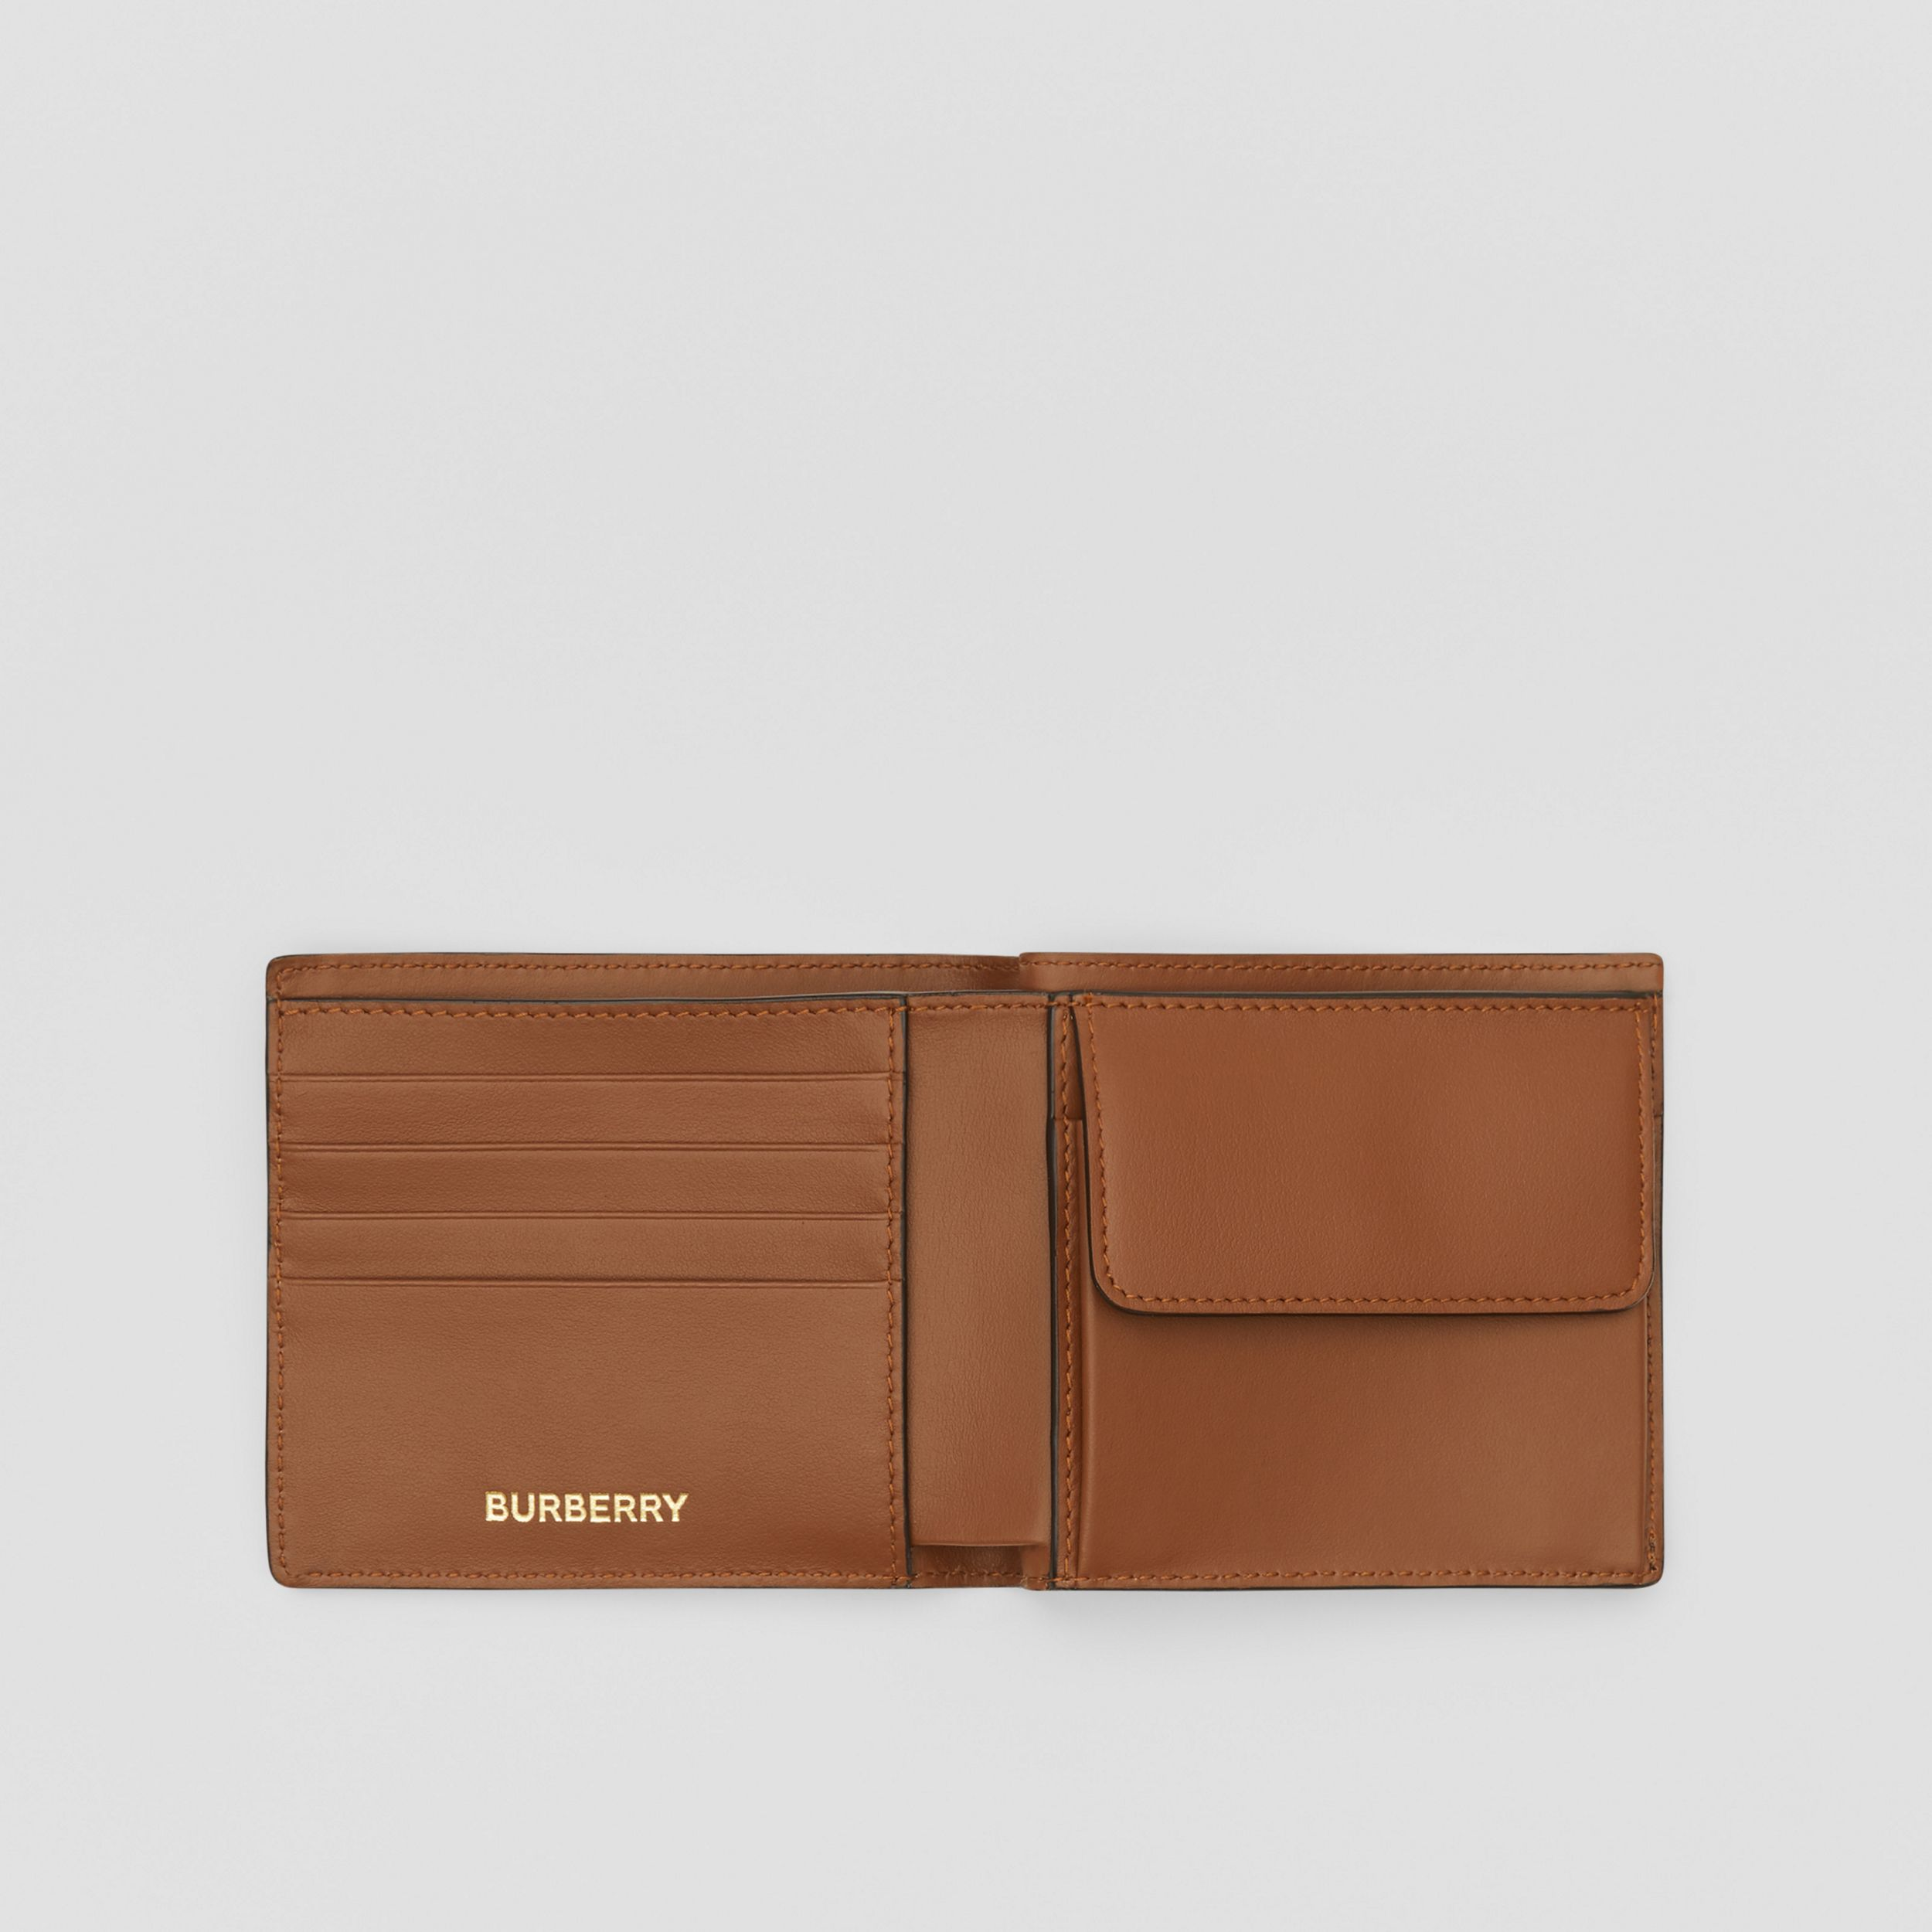 Monogram E-canvas International Bifold Coin Wallet in Bridle Brown - Men | Burberry - 3